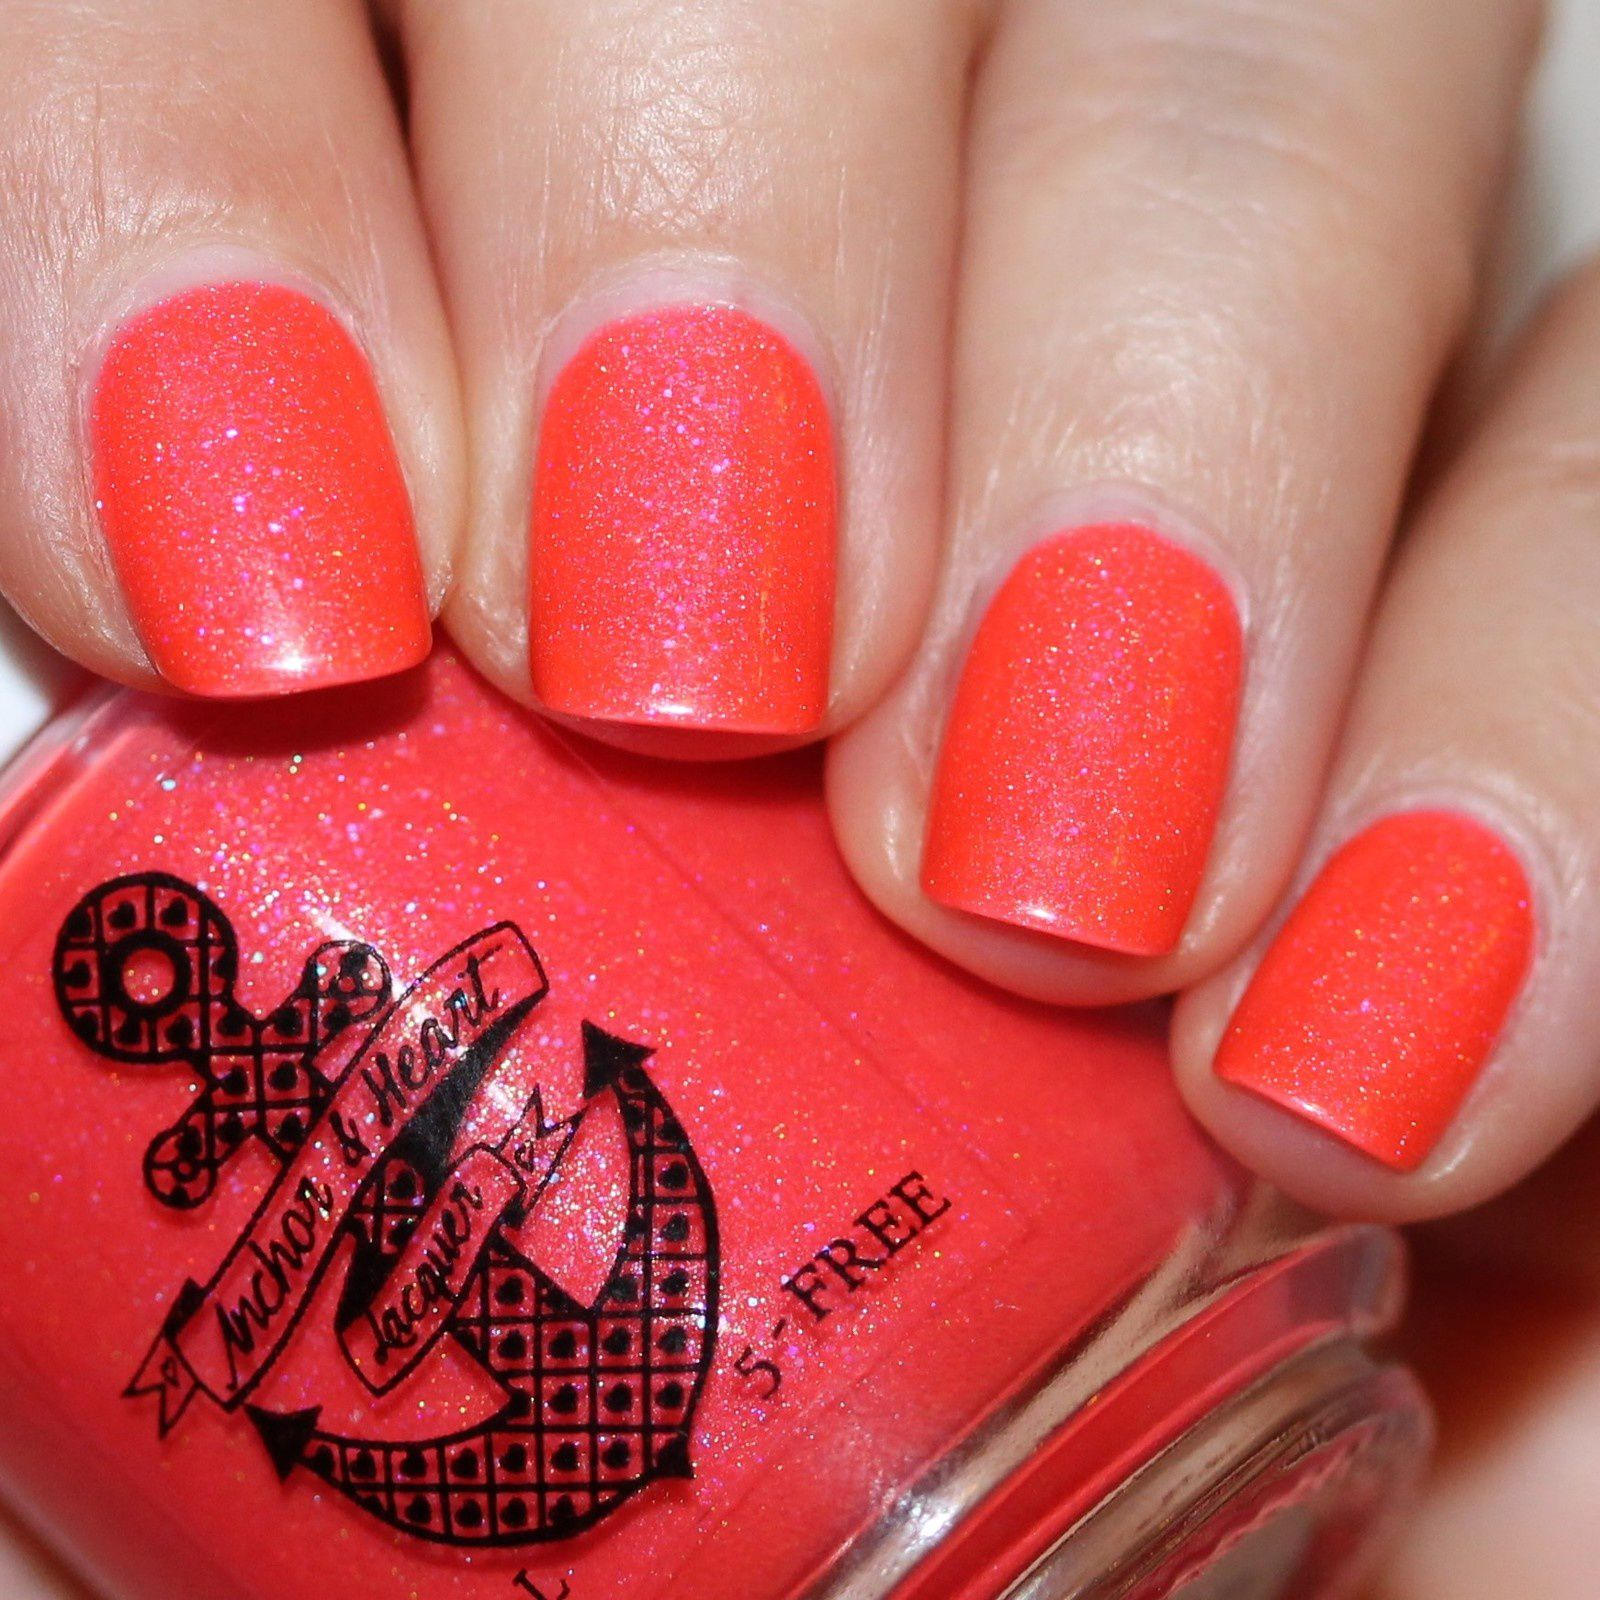 Essie Protein Base Coat / Anchor & Heart Lacquer Vacation Land / HK Girl Top Coat